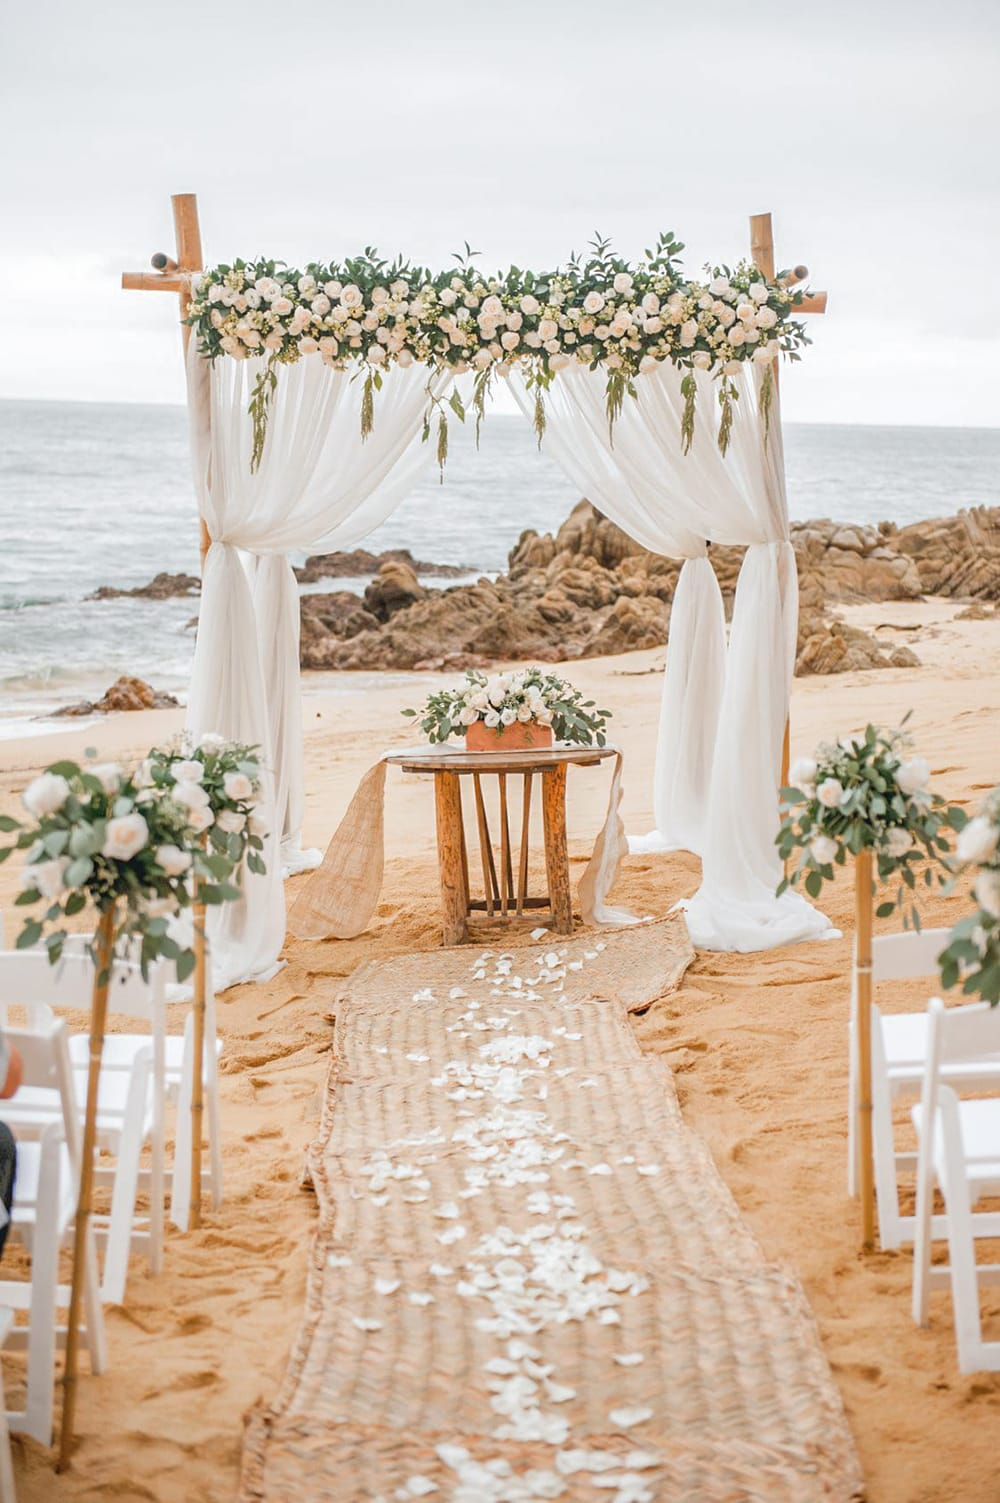 Wedding arch with full white rose garland and signing table with floral arrangement facing the water for a beach wedding ceremony by Adventure Weddings